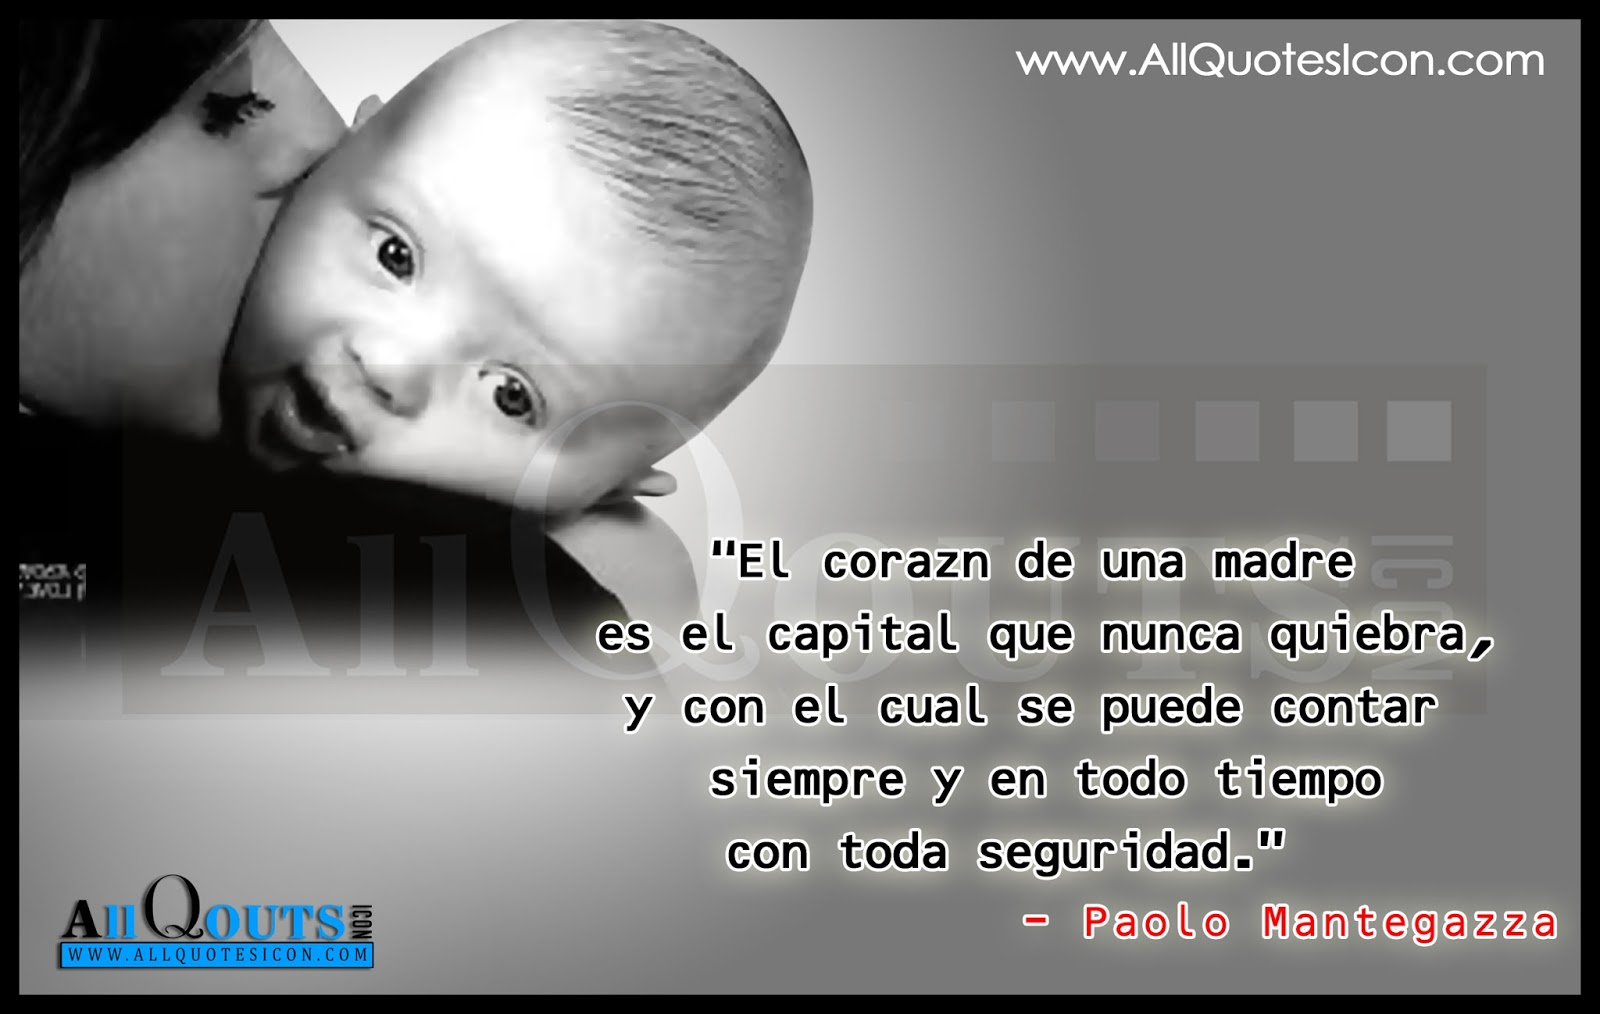 Mothers Day Images and Quotes in Spanish   .AllQuotesIcon.